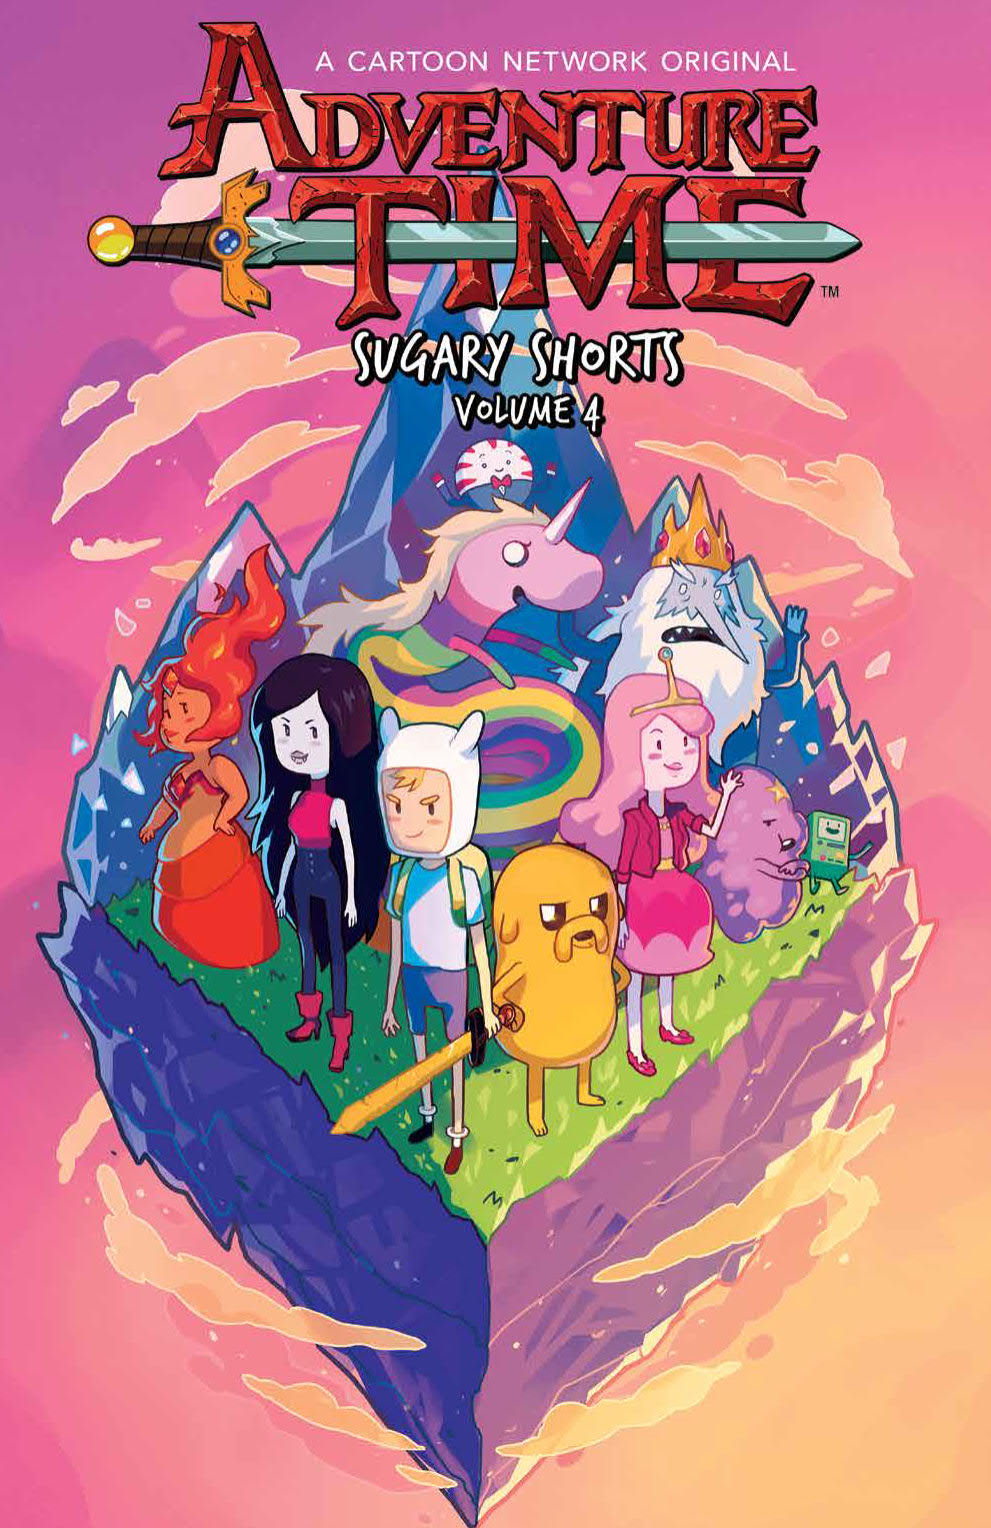 Adventure Time Sugary Shorts Vol. 4 SC